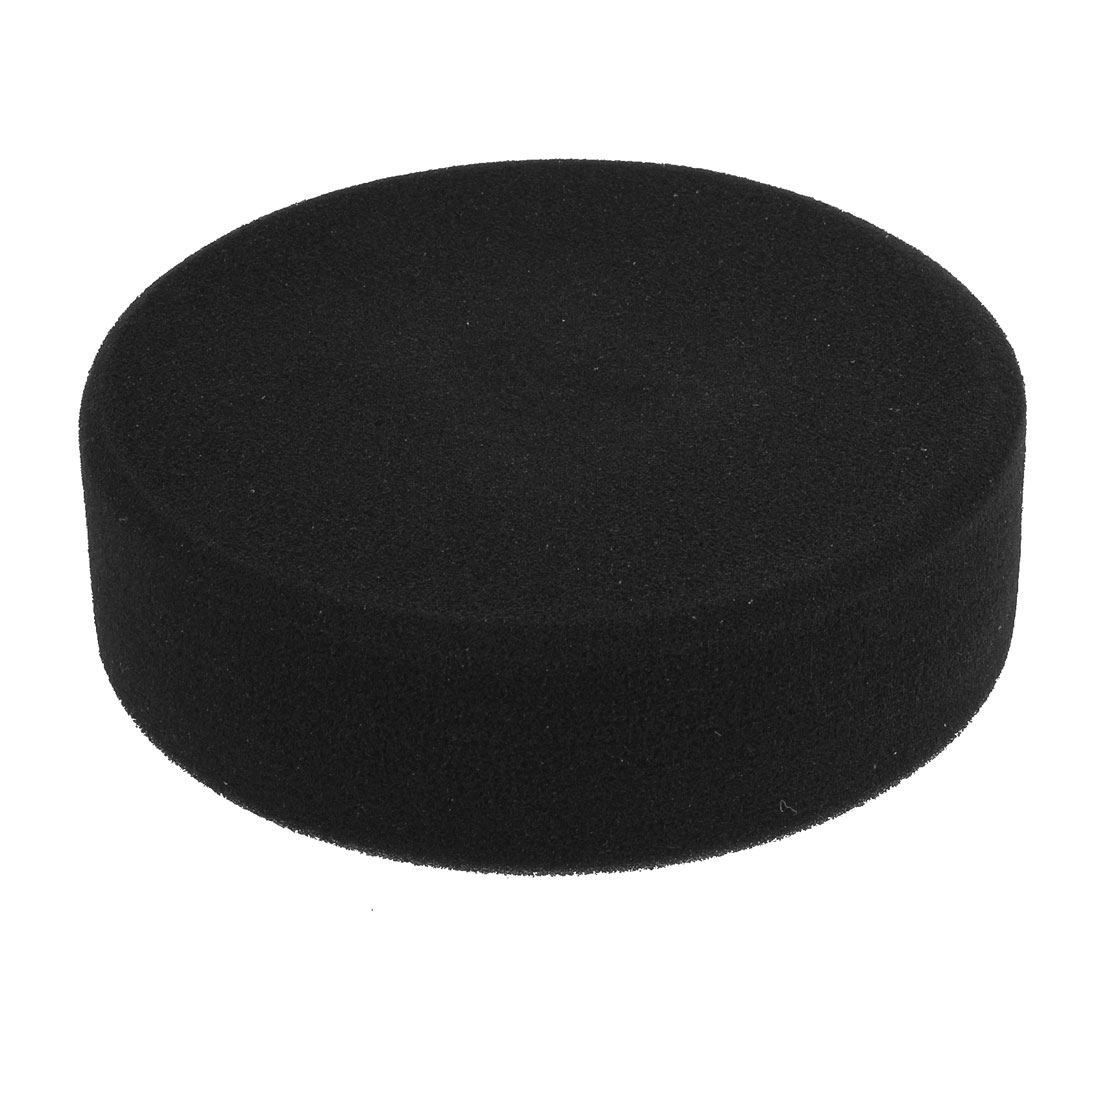 "6"" Dia Black Round Sponge 0.6"" Female Thread Sponge Polishing Ball Tool for Car"